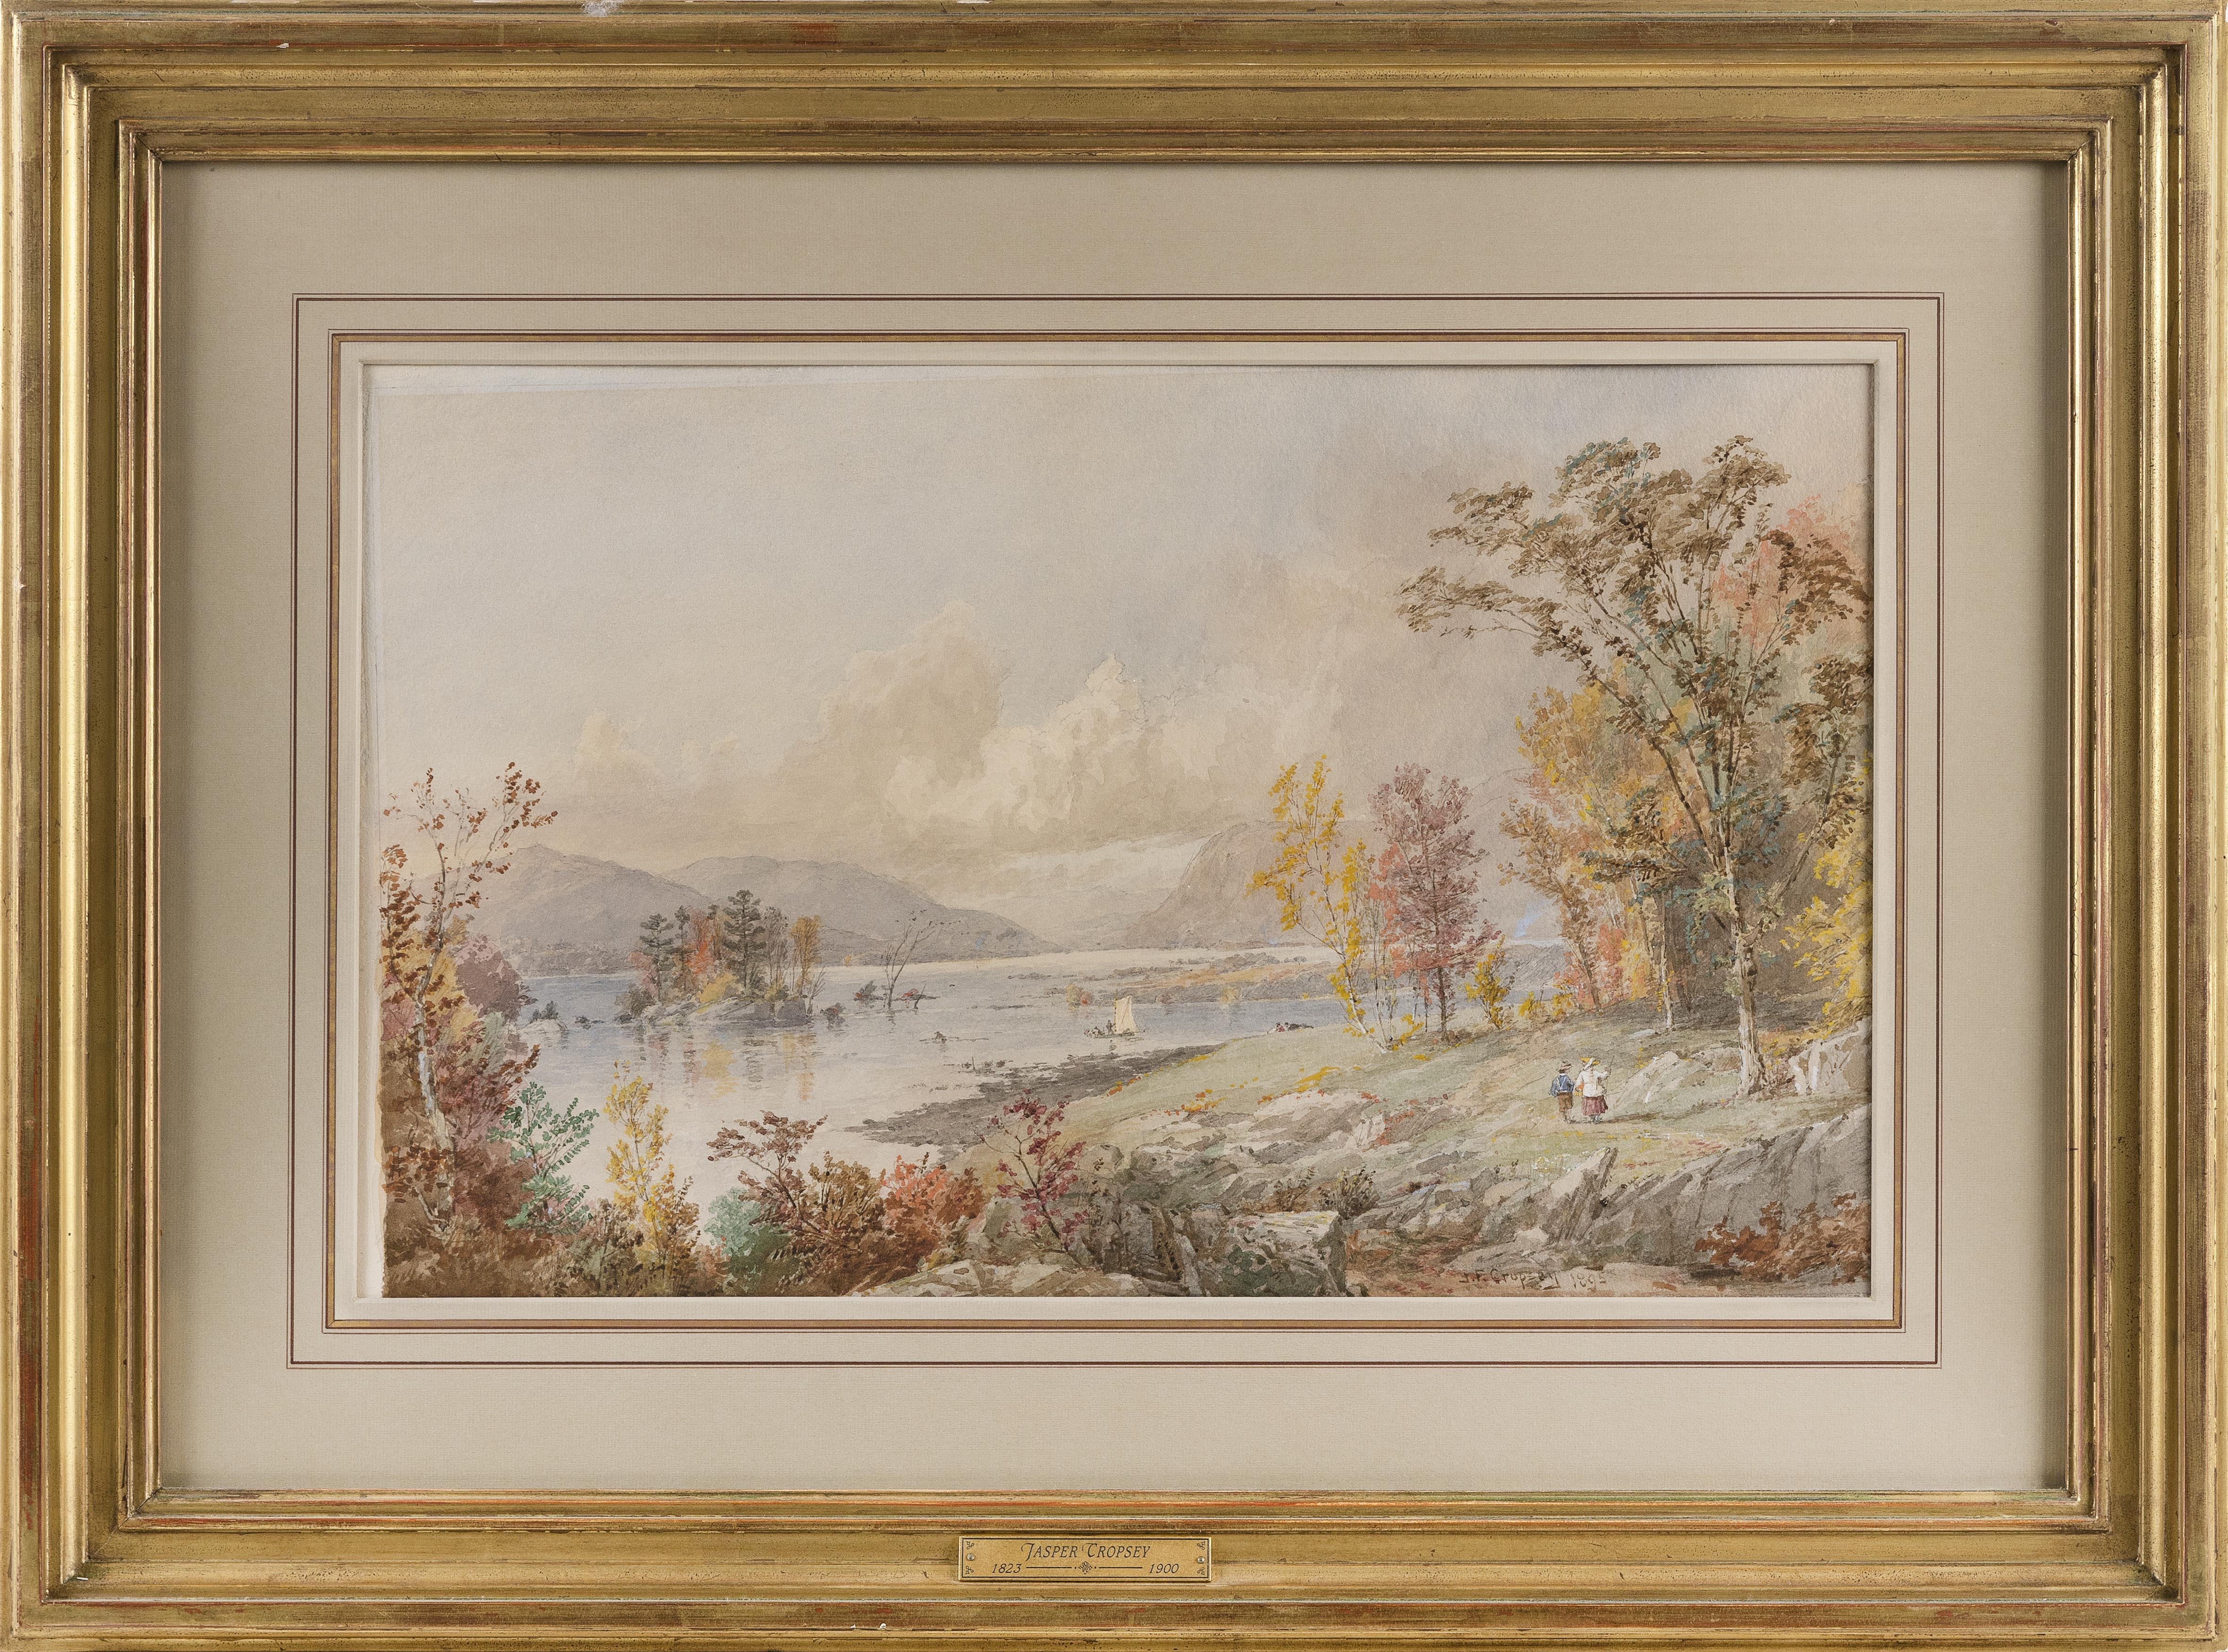 """JASPER FRANCIS CROPSEY (New York, 1823-1900), """"Greenwood Lake New Jersey 1895""""., Watercolor on paper, 12.75"""" x 21"""". Framed 22.5"""" x 31.5""""."""